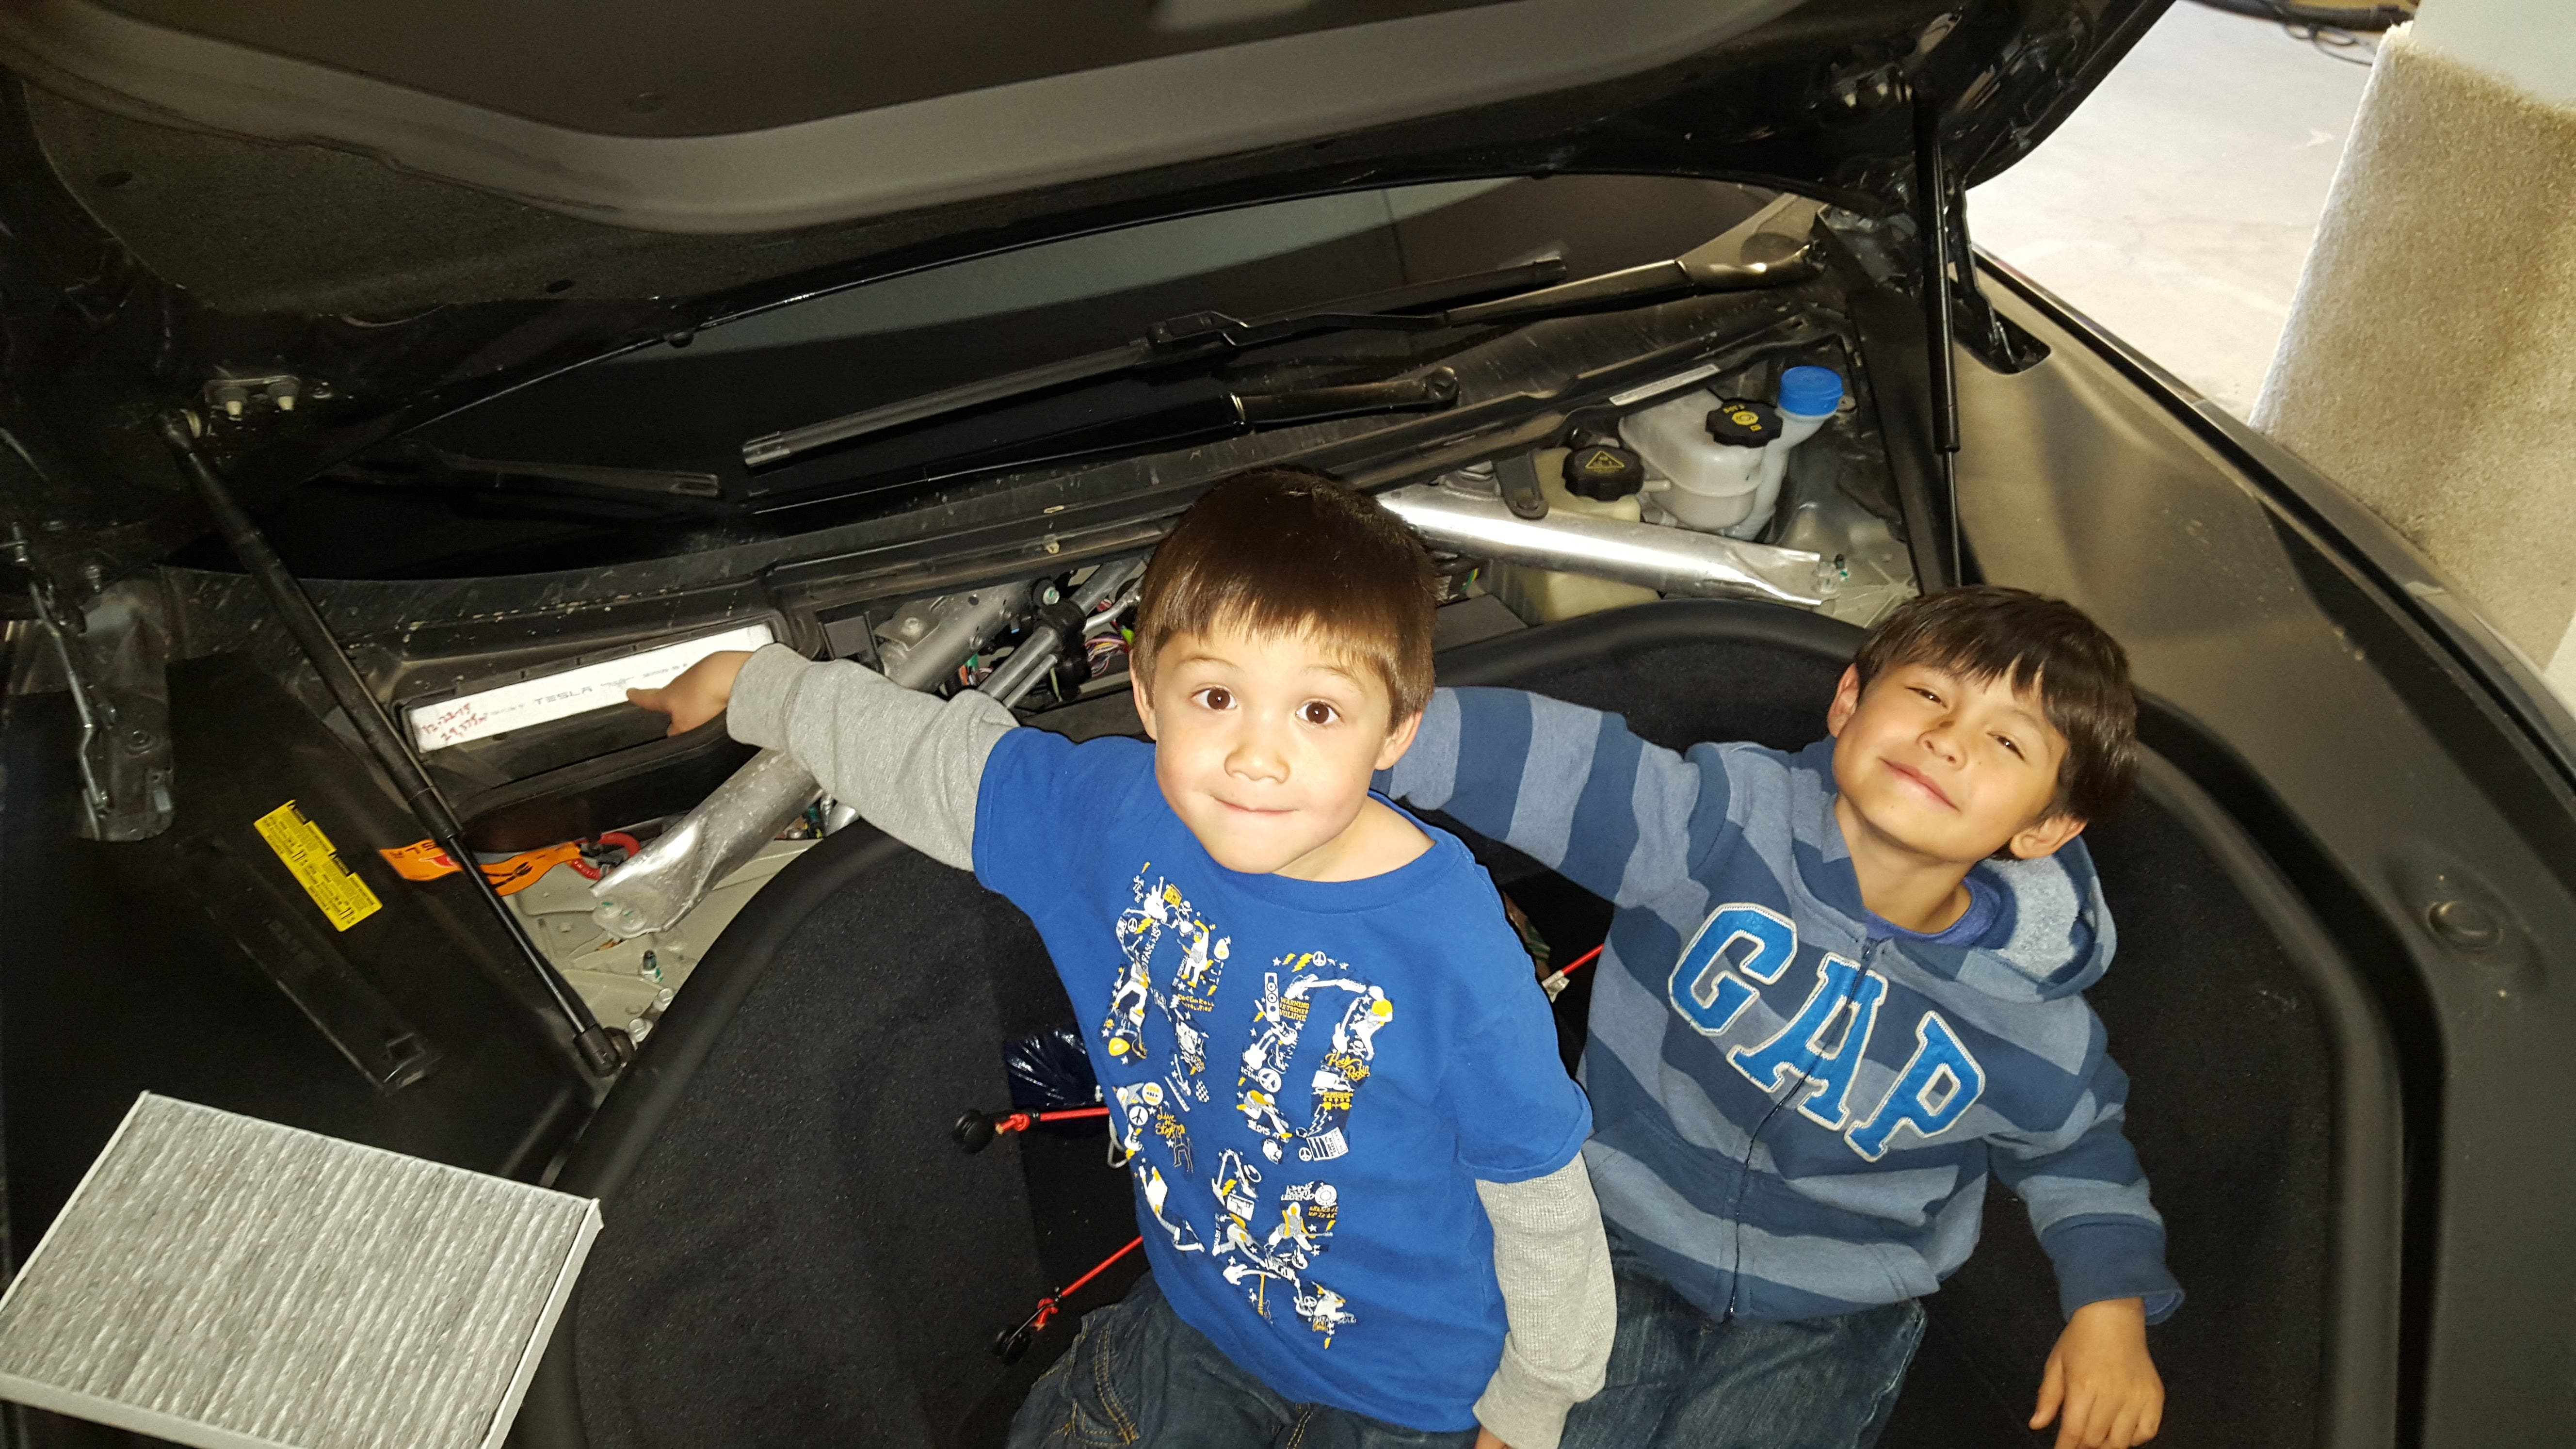 The Little Dudes Helping Swap Out Cabin Air Filter On My Model S